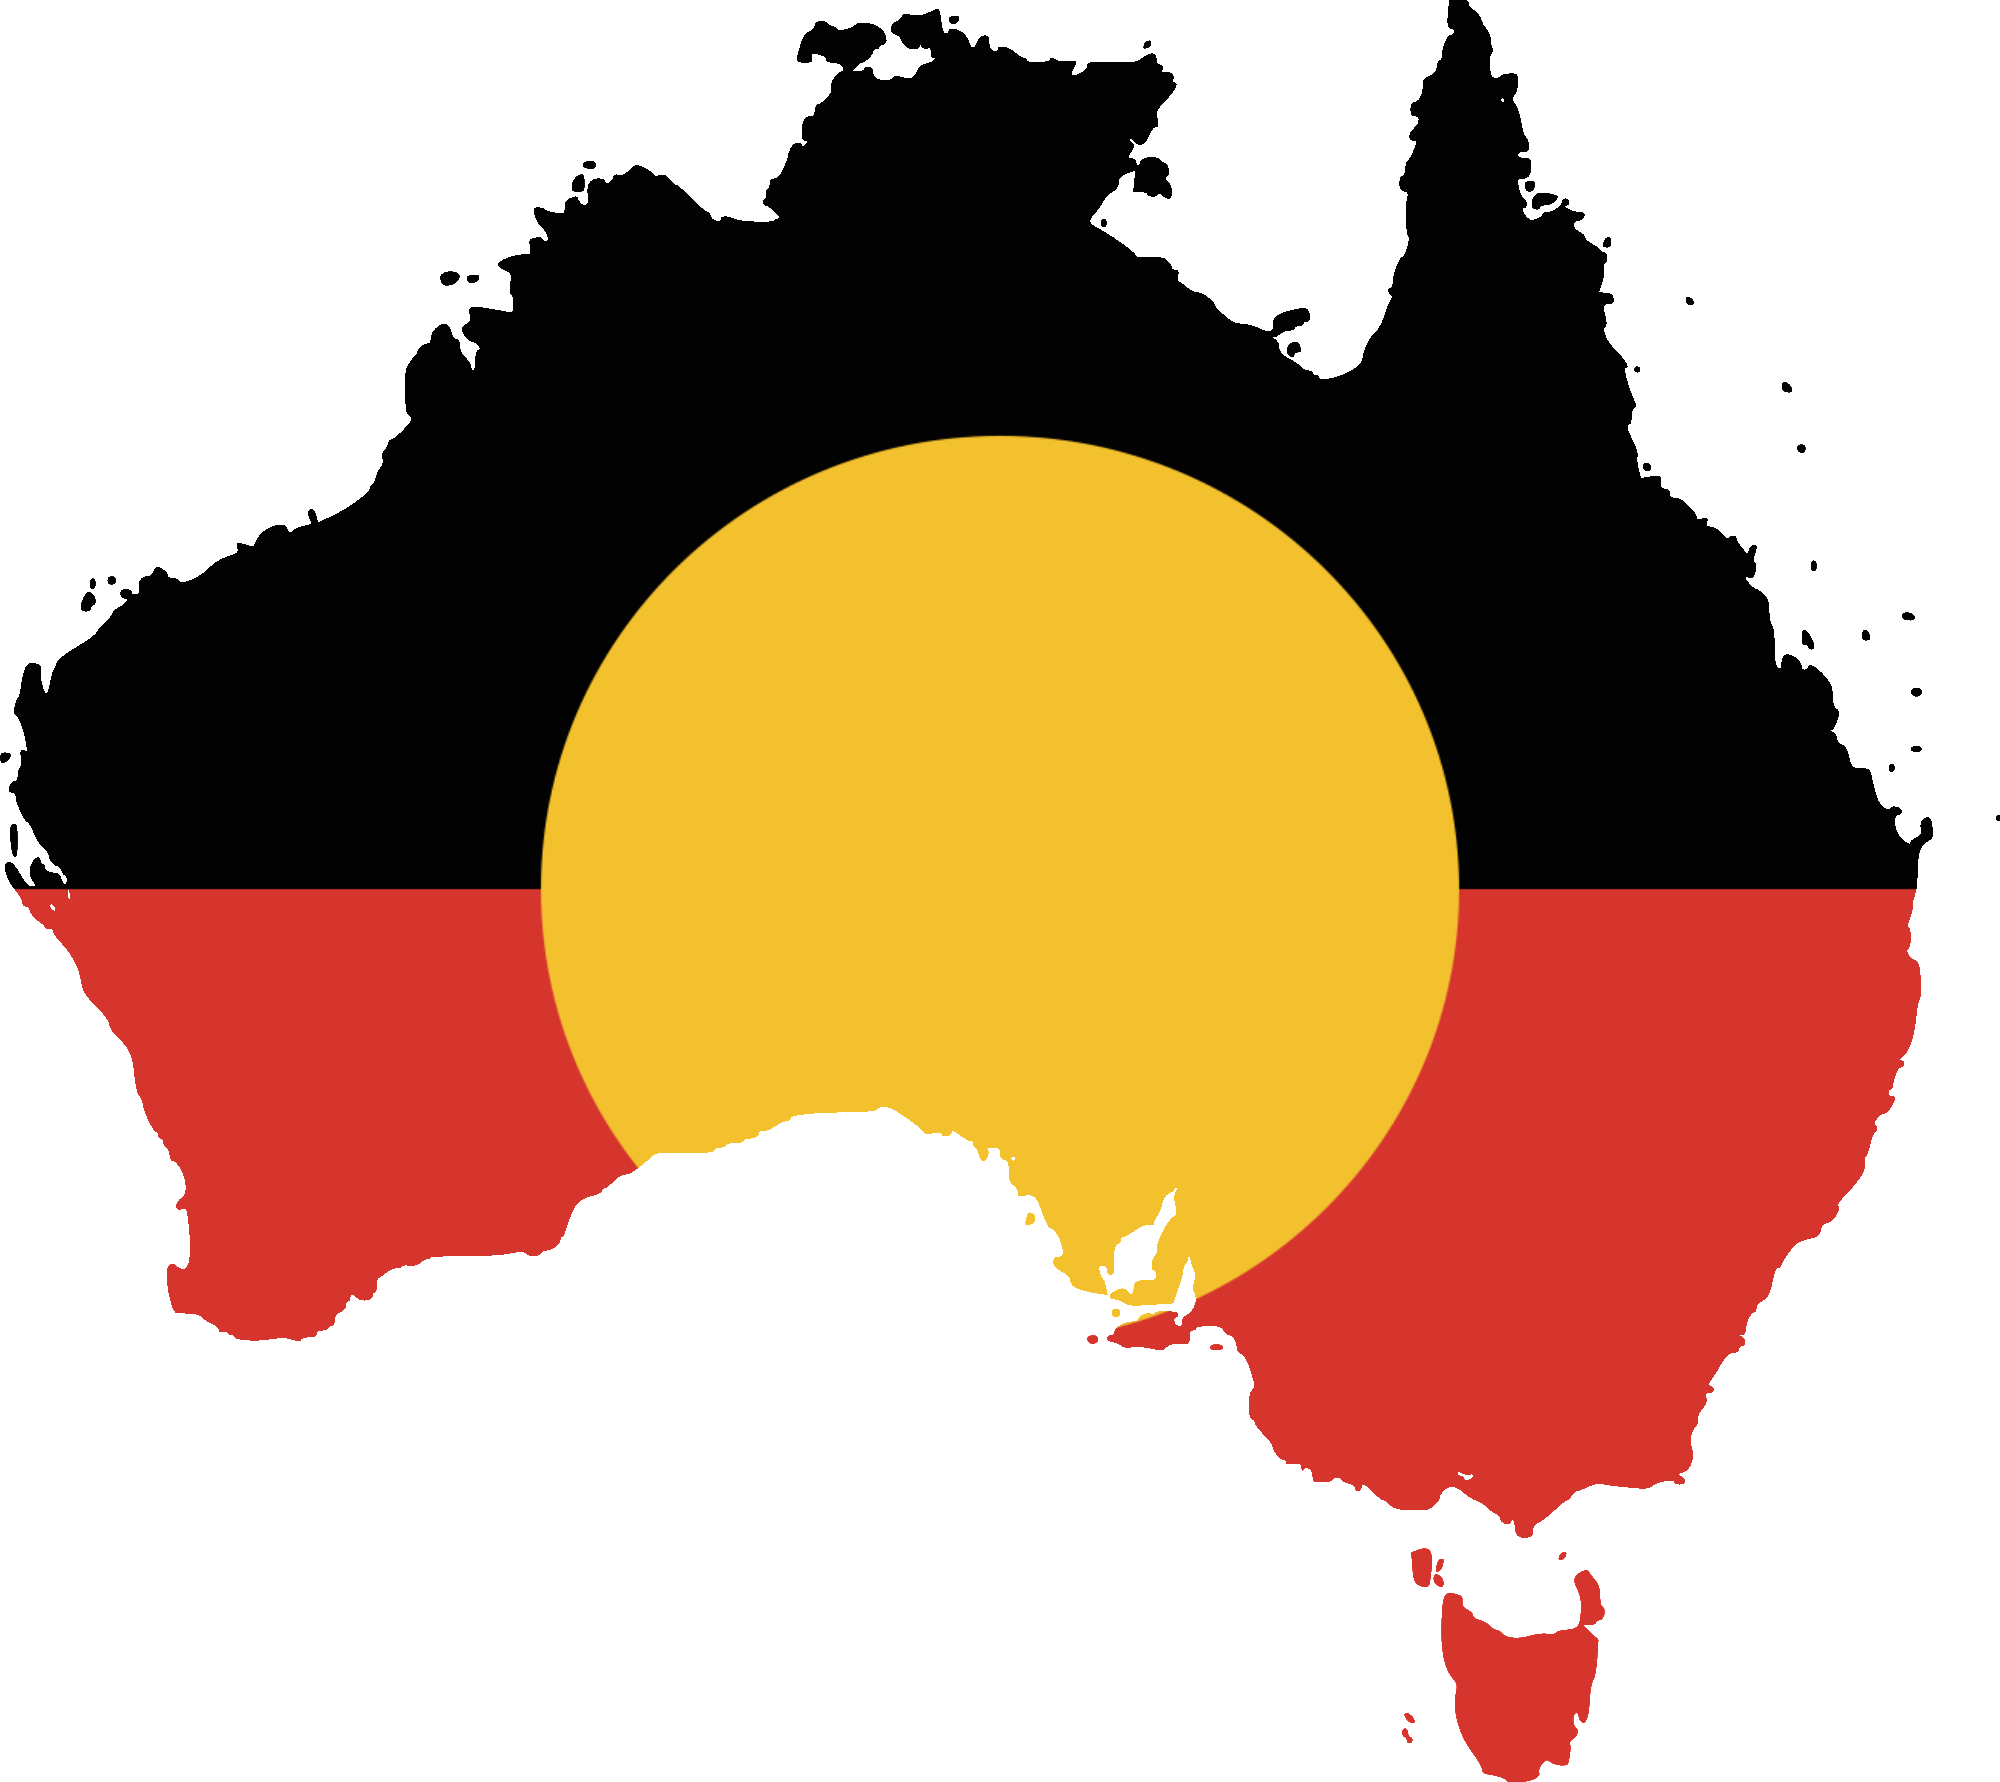 Rs aboriginal creation story. Land clipart land ownership